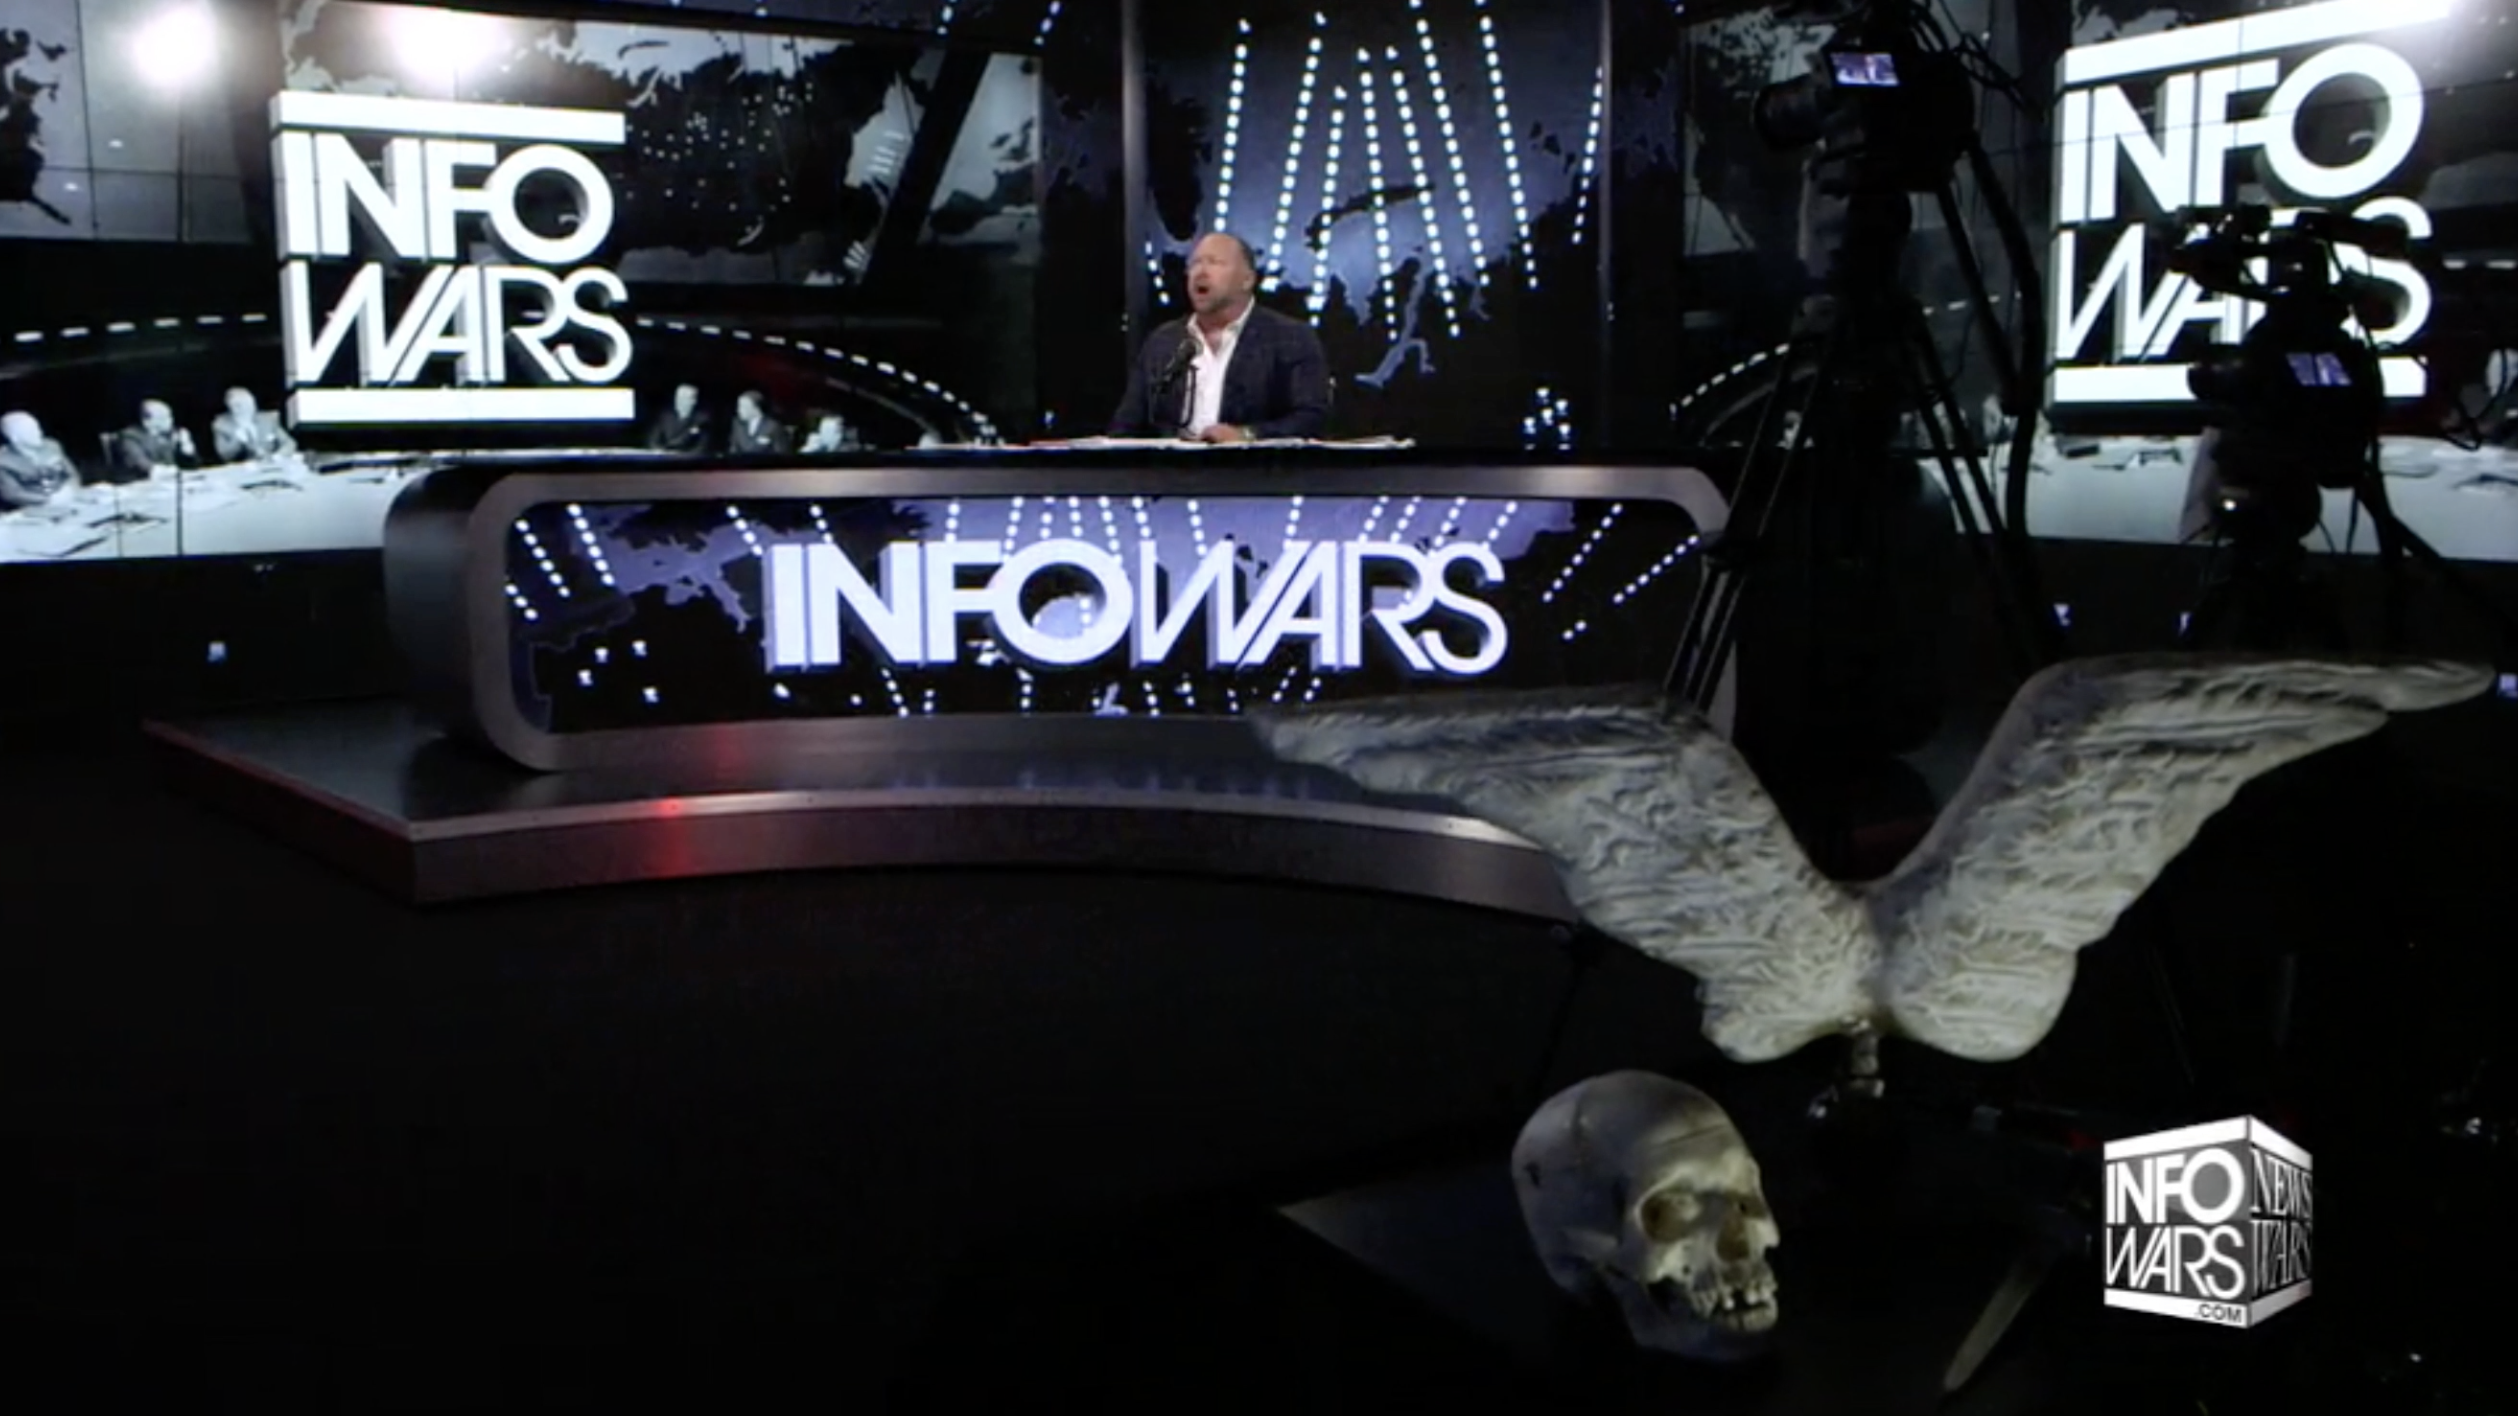 Alex Jones Infowars Studio EXZM Angel Wings Skull August 4th 2020